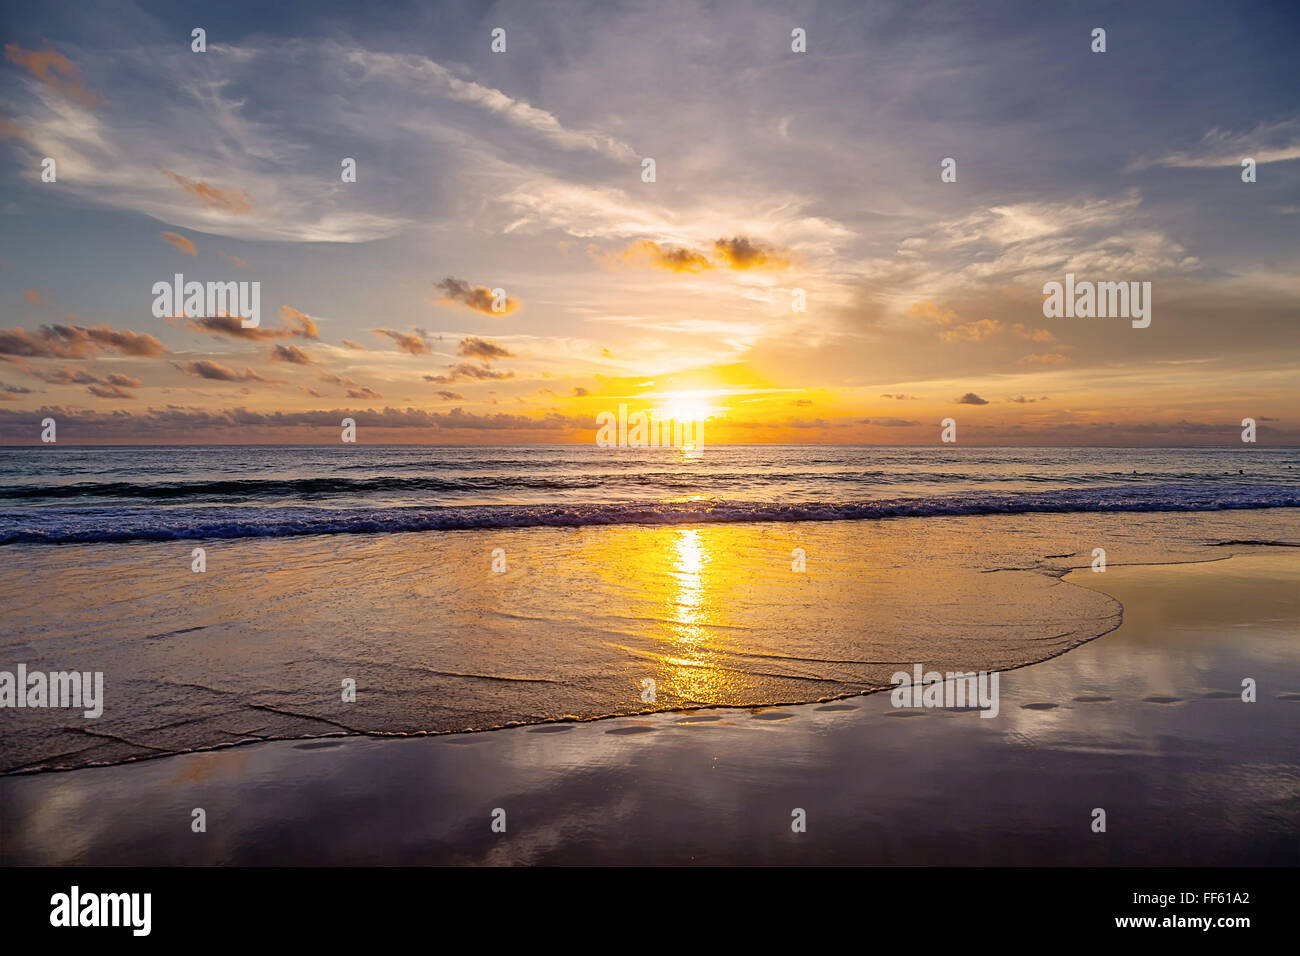 Sunset on the beach of Patong. Phuket Island. Thailand. - Stock Image